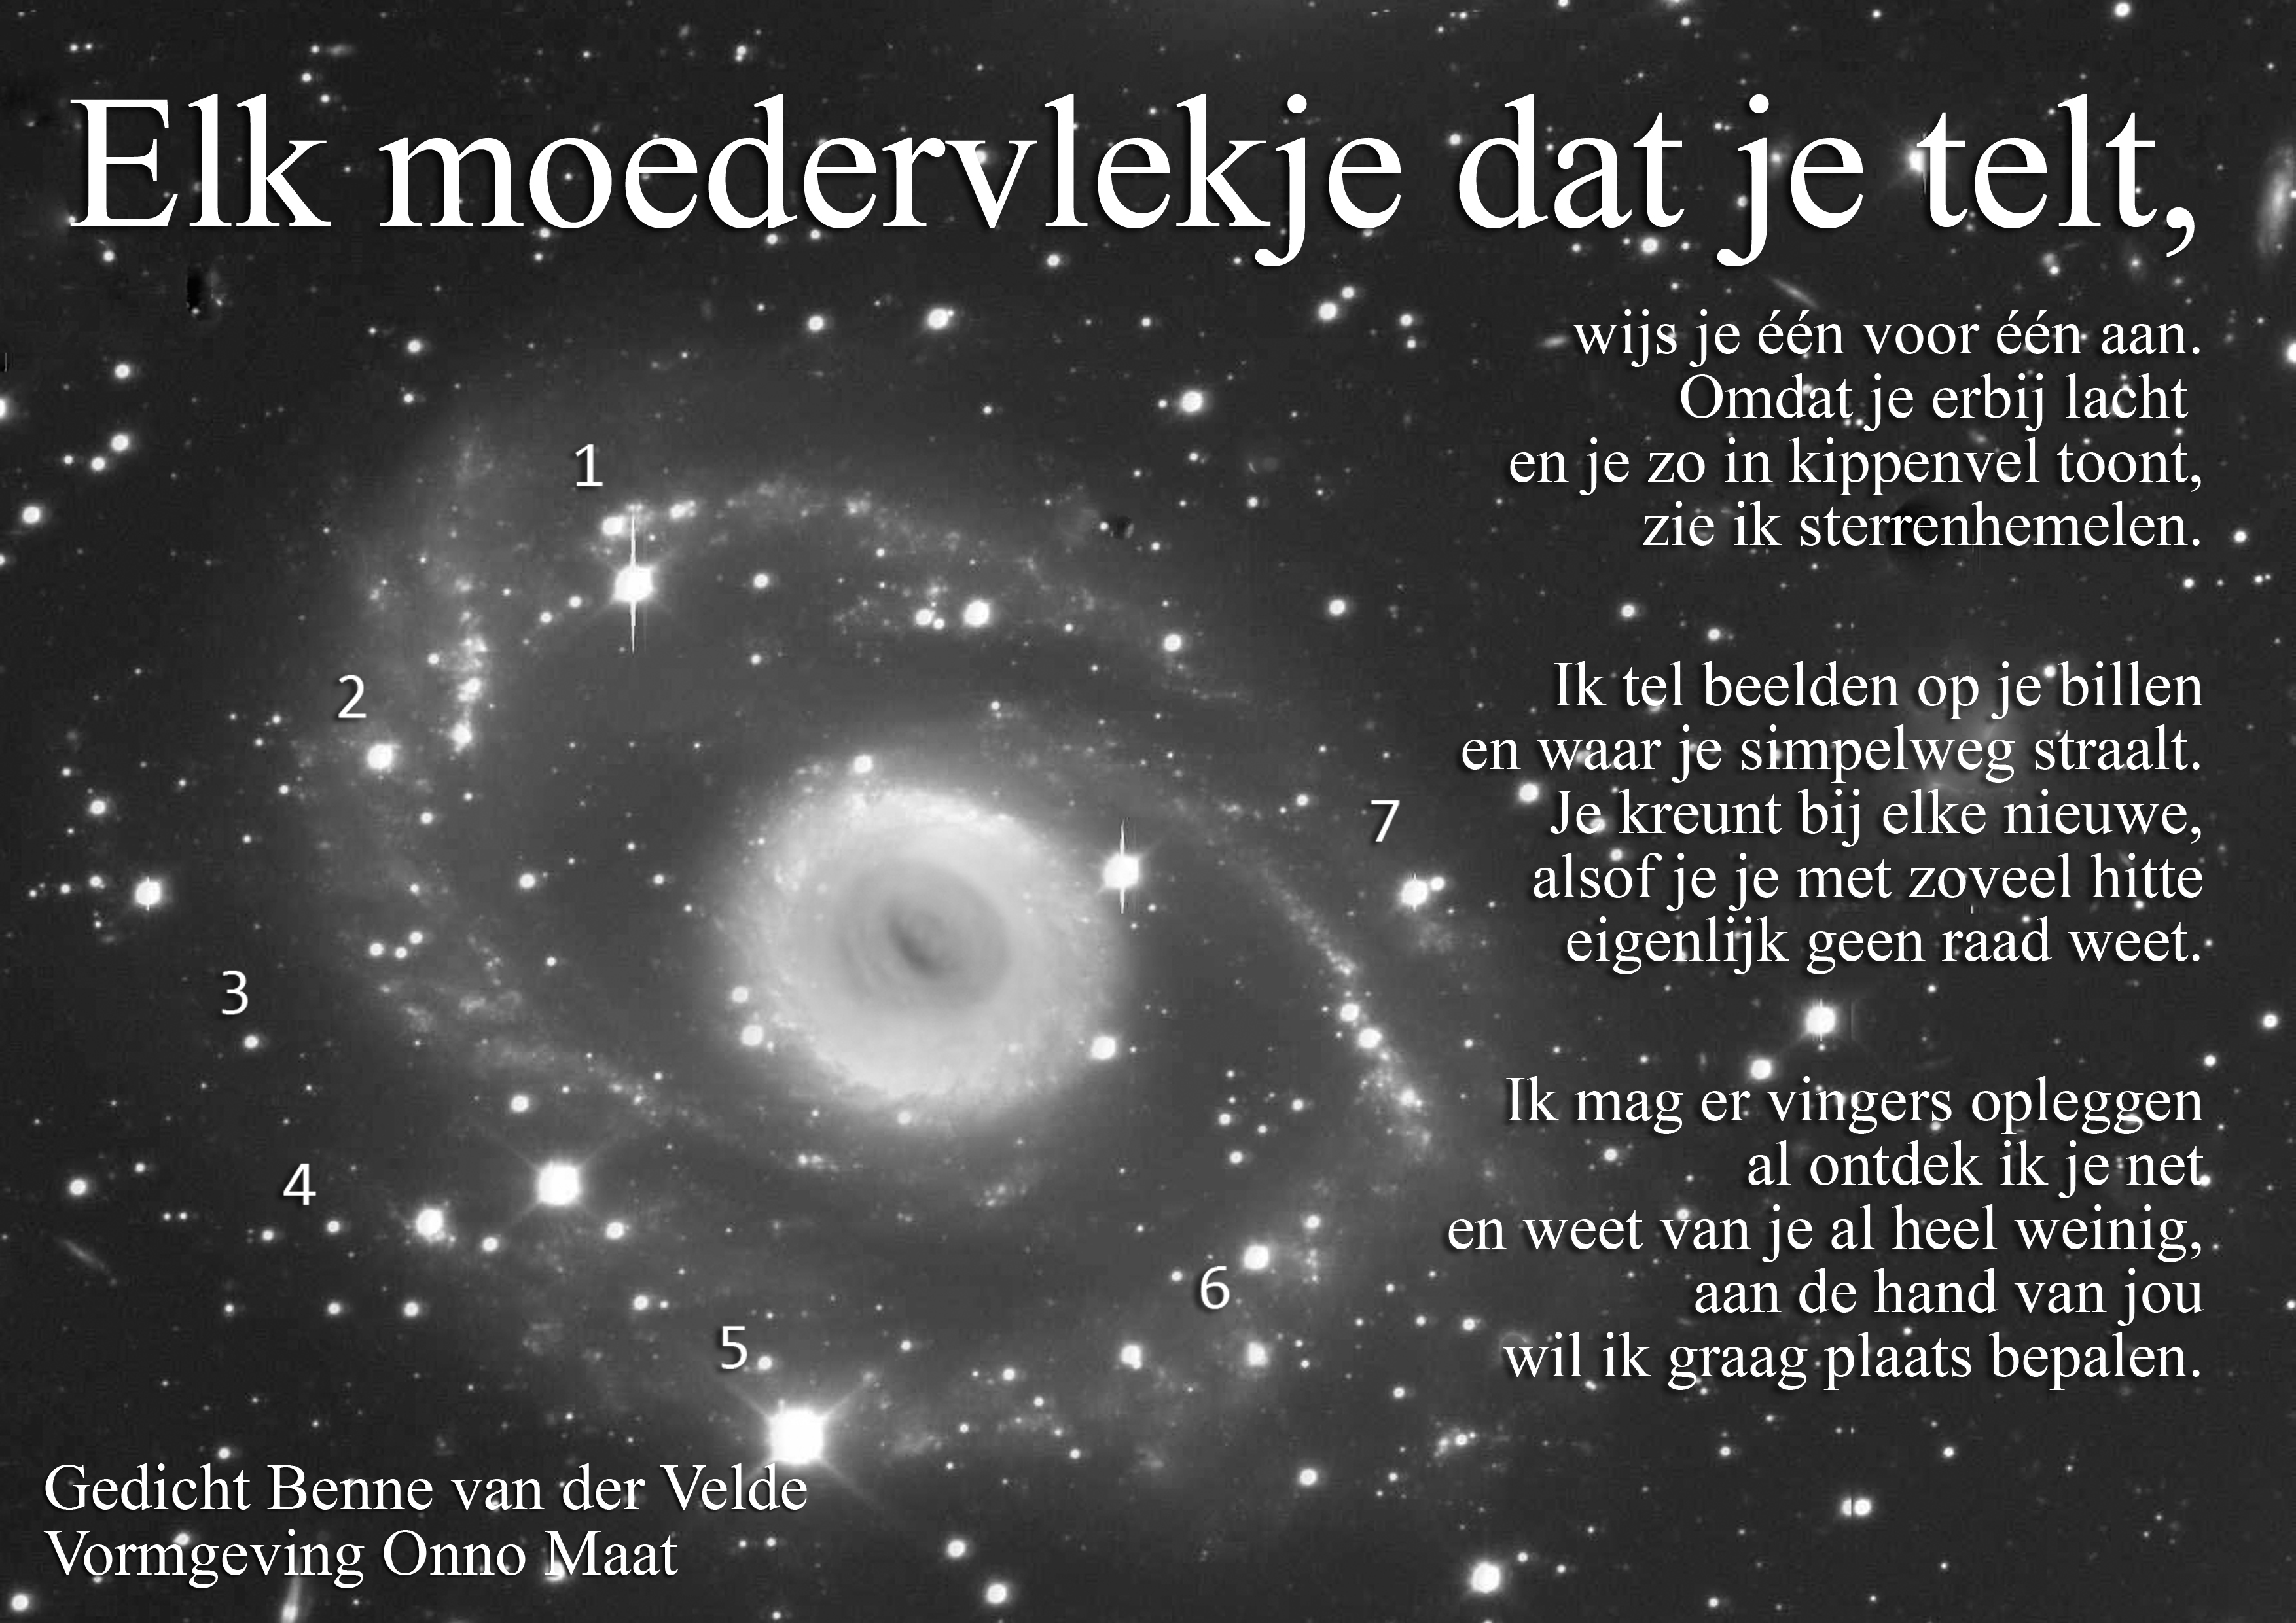 elk moedervlekje - benne van der velde